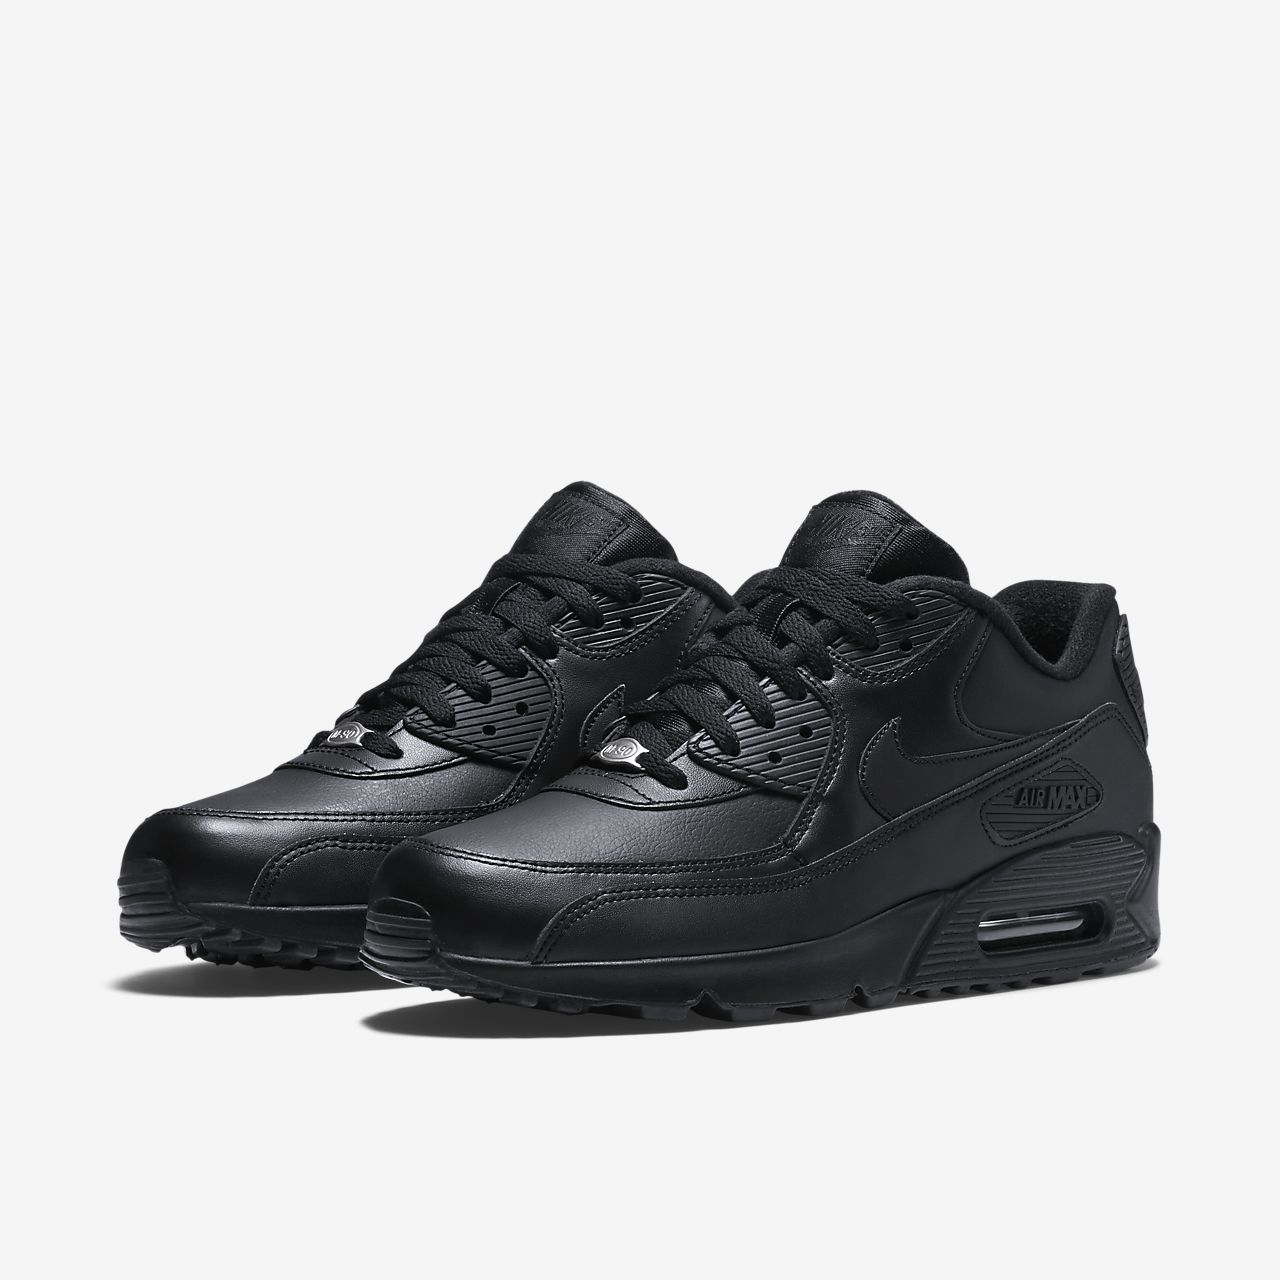 air max leather nere